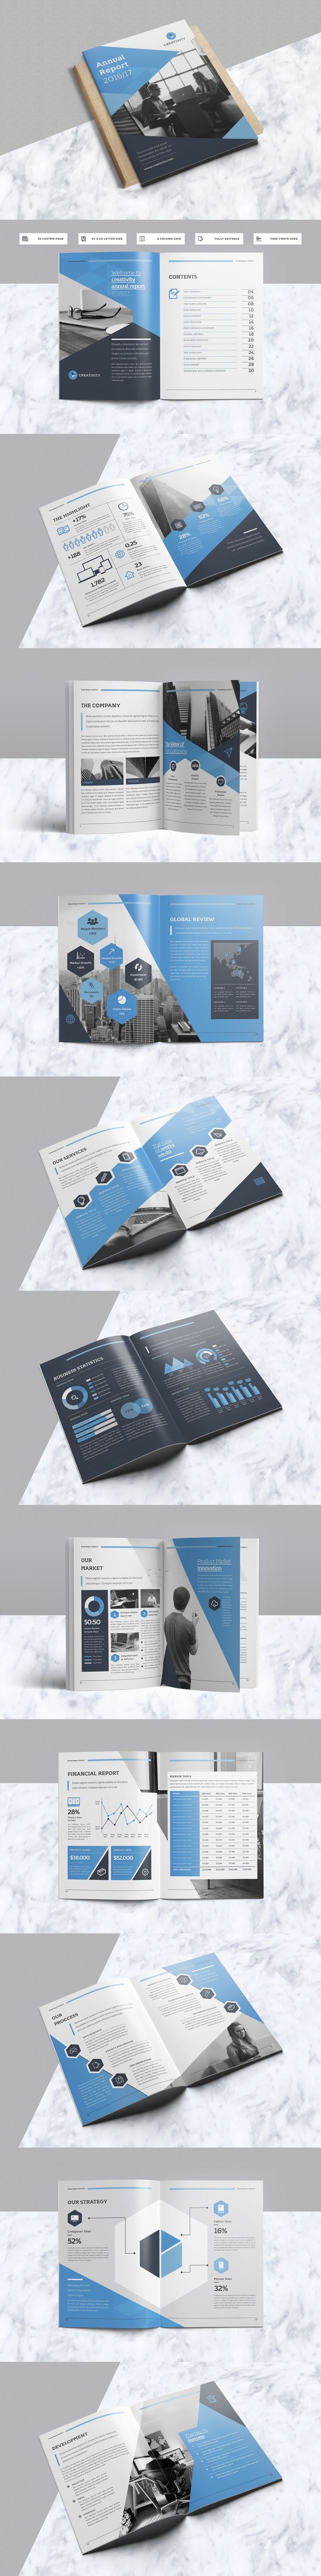 Creative & Professional Annual Report Template INDD With Include A4 & US Letter Size